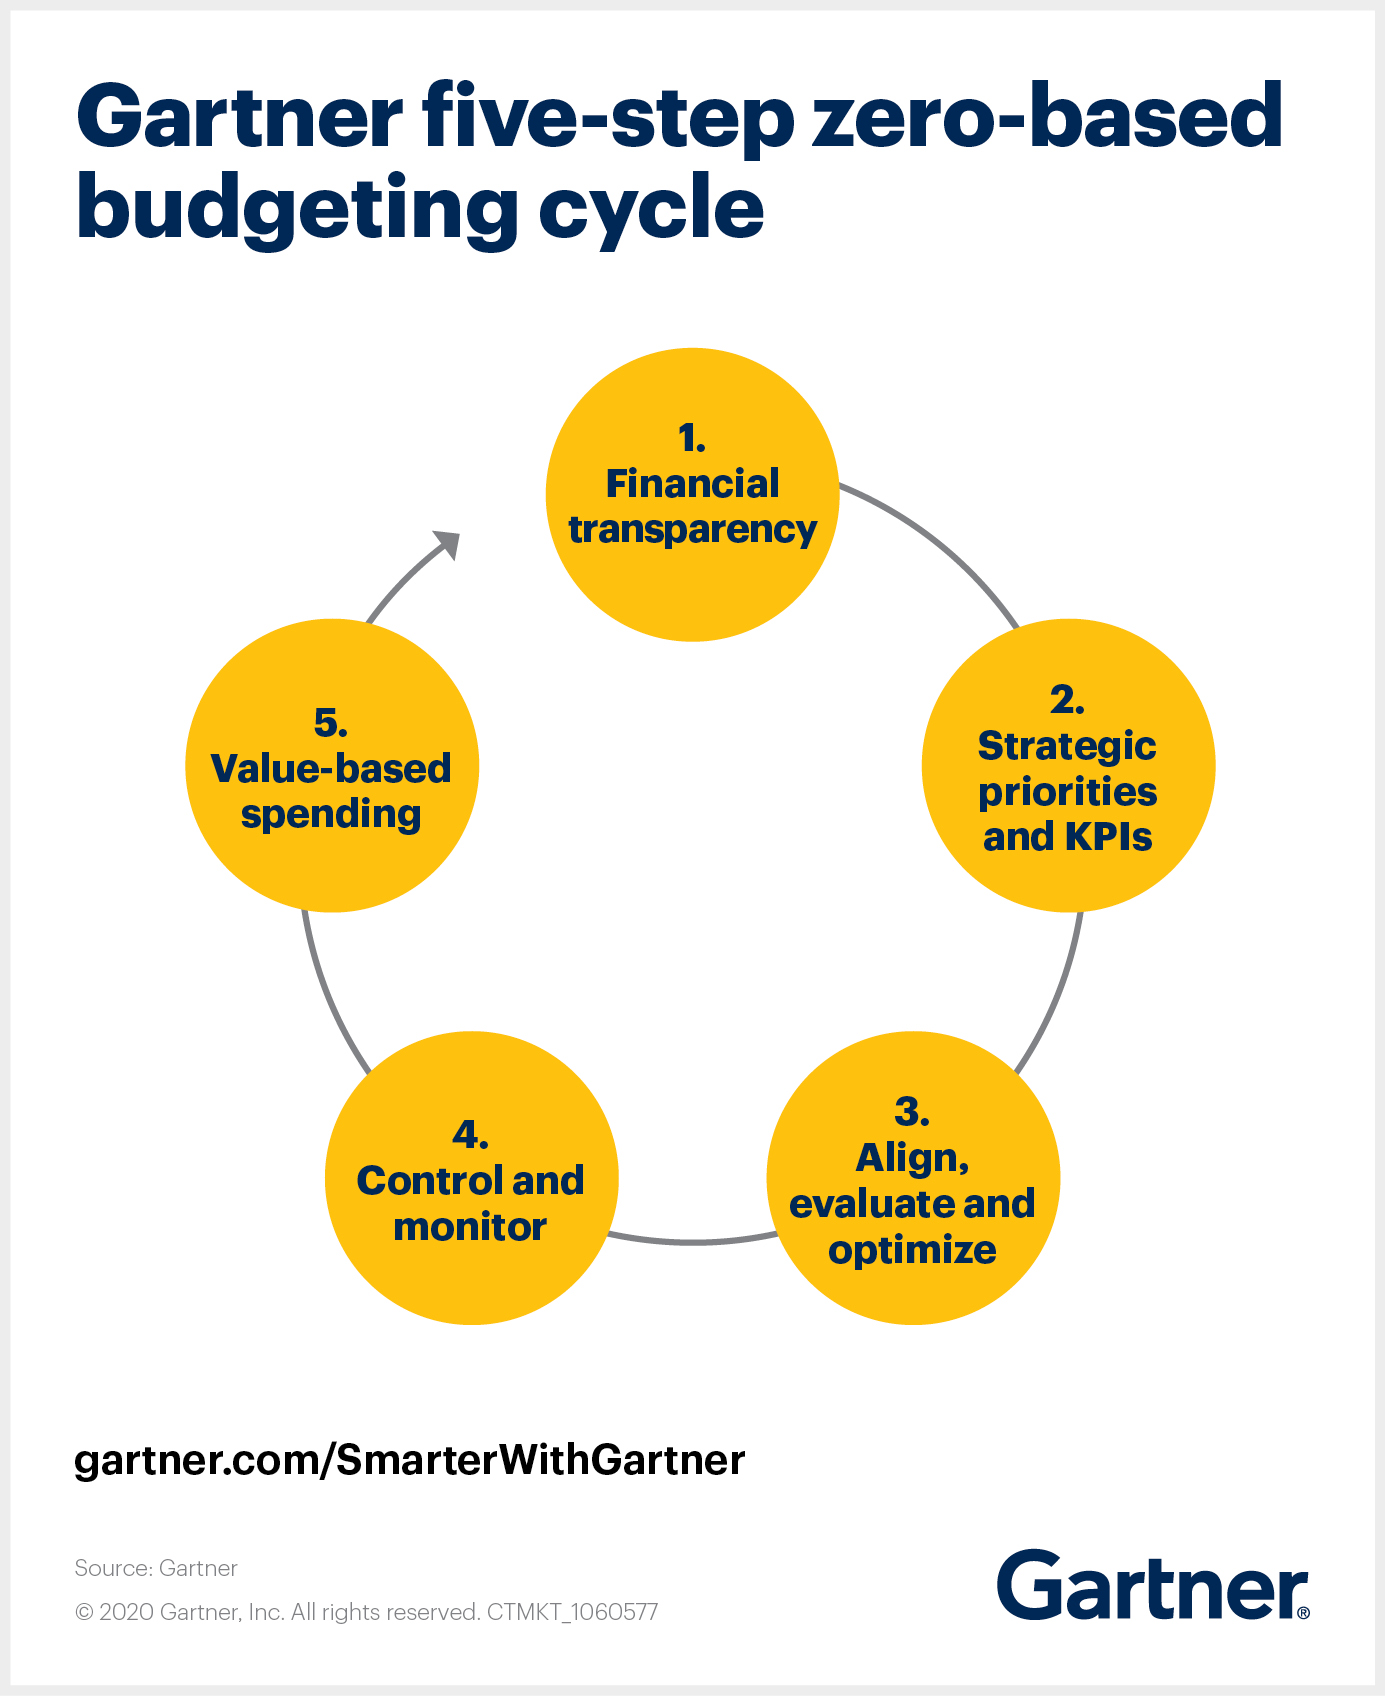 Zero-based budgeting cycle in five steps helps to smooth ZBB implementation.